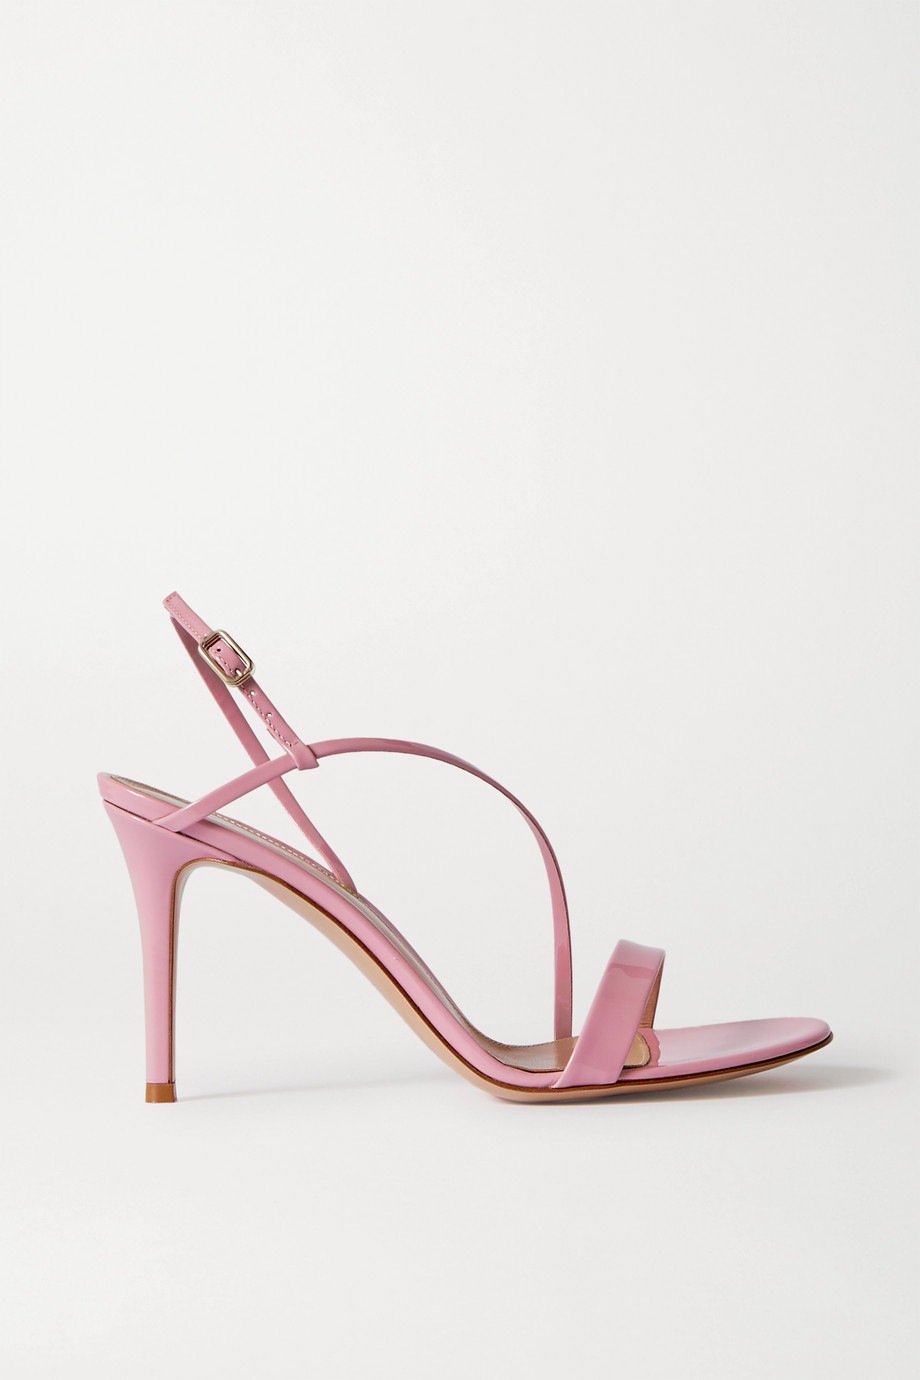 Gianvito Rossi Manhattan 85 patent-leather sandals